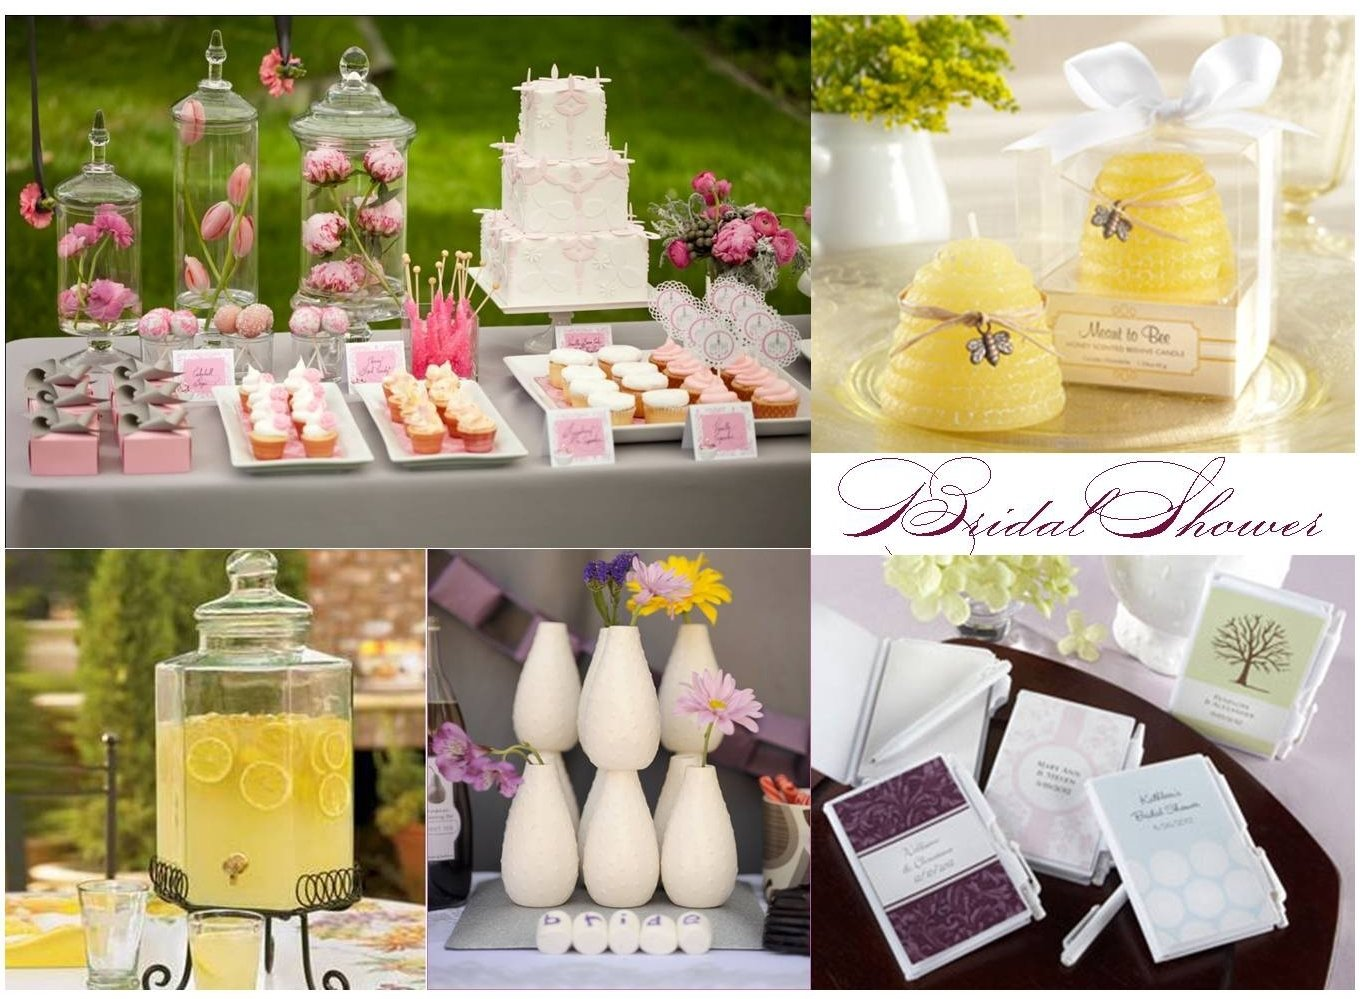 10 Stylish Ideas For Bridal Shower Themes tbdress blog all about the wedding shower theme ideas 1 2020